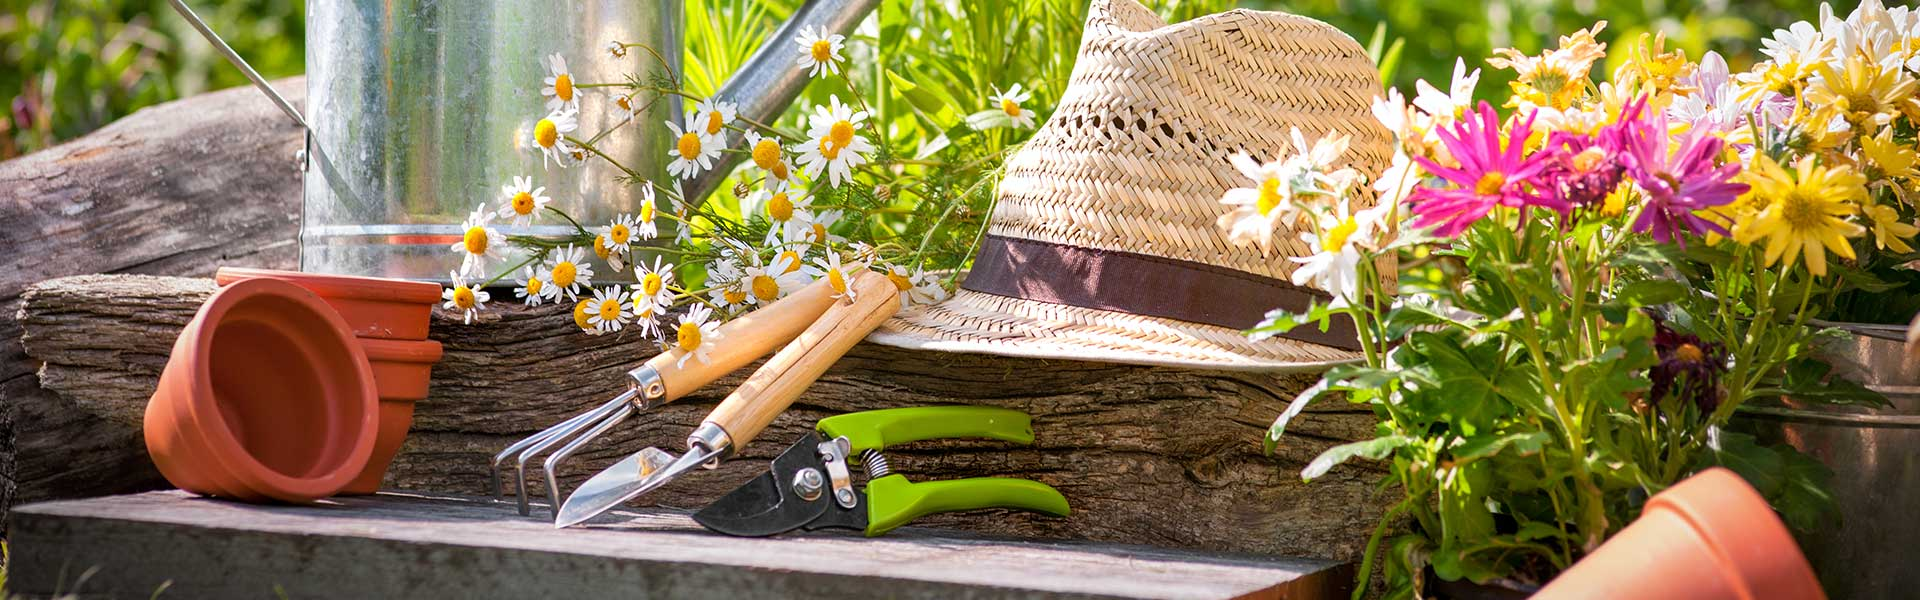 Our experts will improve your garden in no time!